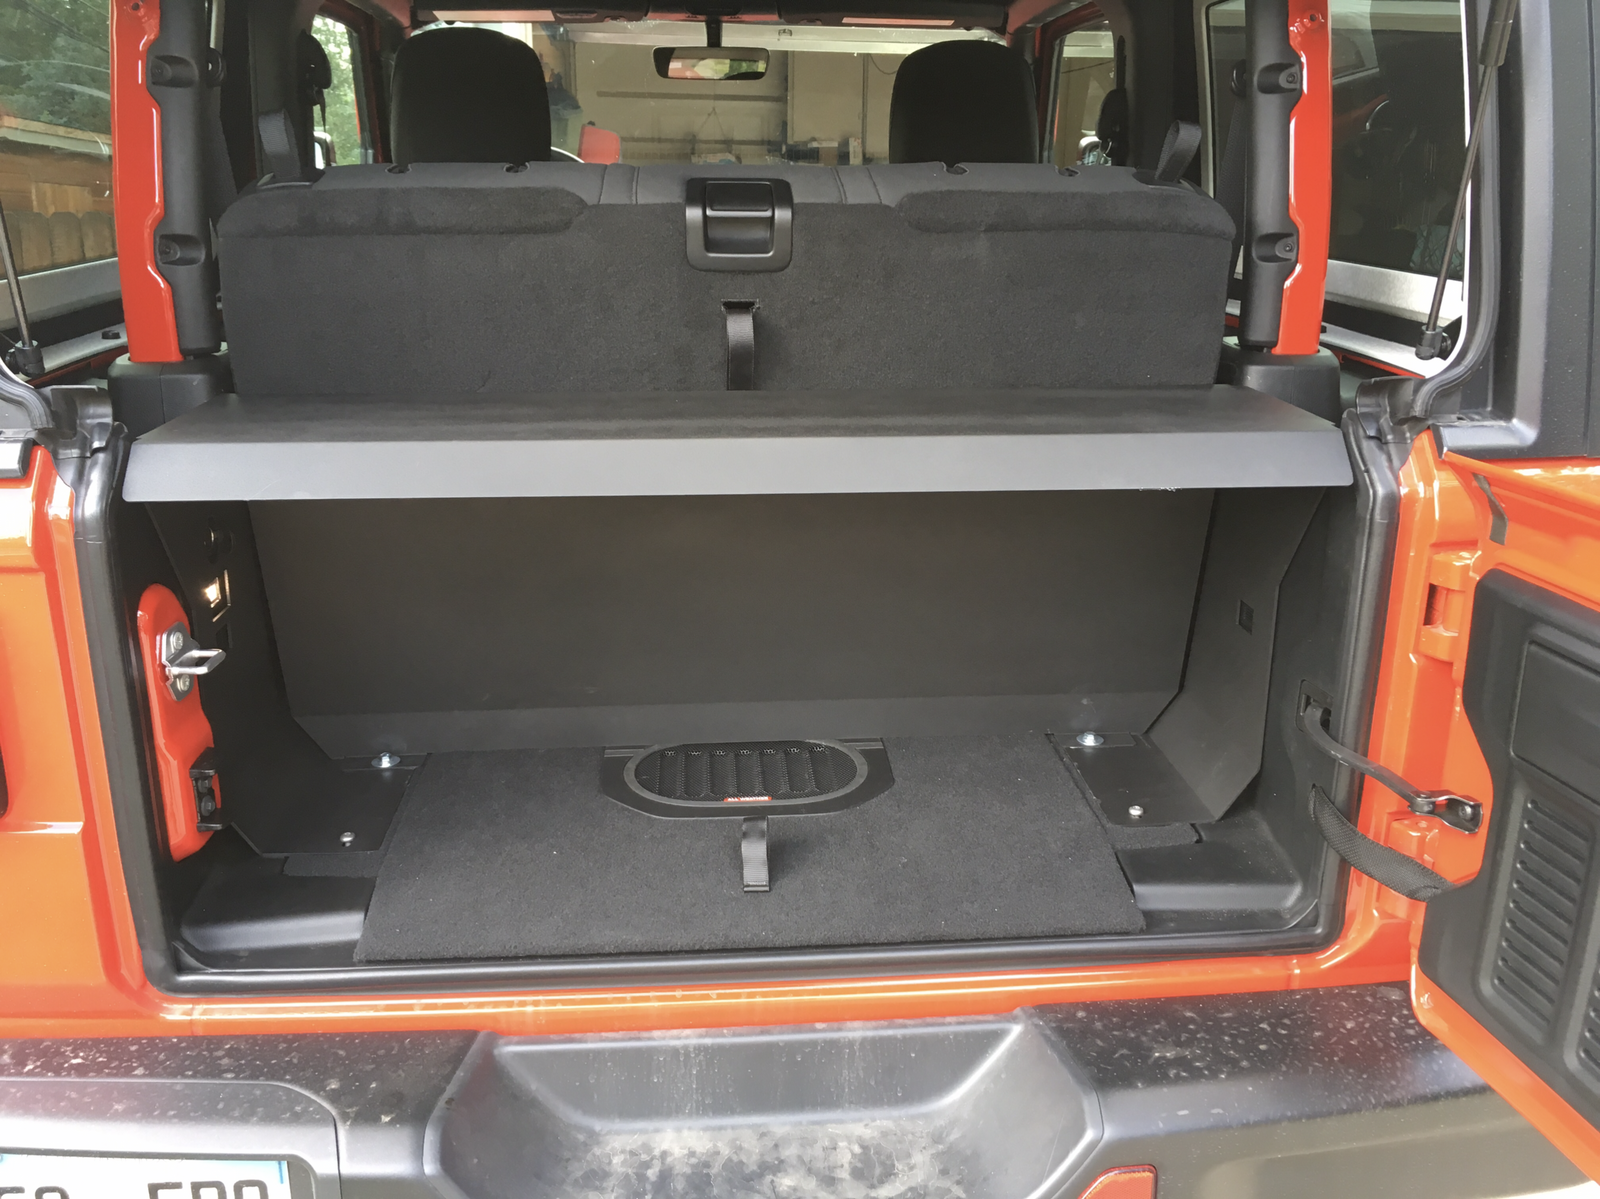 Trunk Option For 2018 2 Door Wrangler Jl 2018 Jeep Wrangler Forums Jl Jlu Rubicon Sahara Sport Unlimited Jlwranglerforums Com